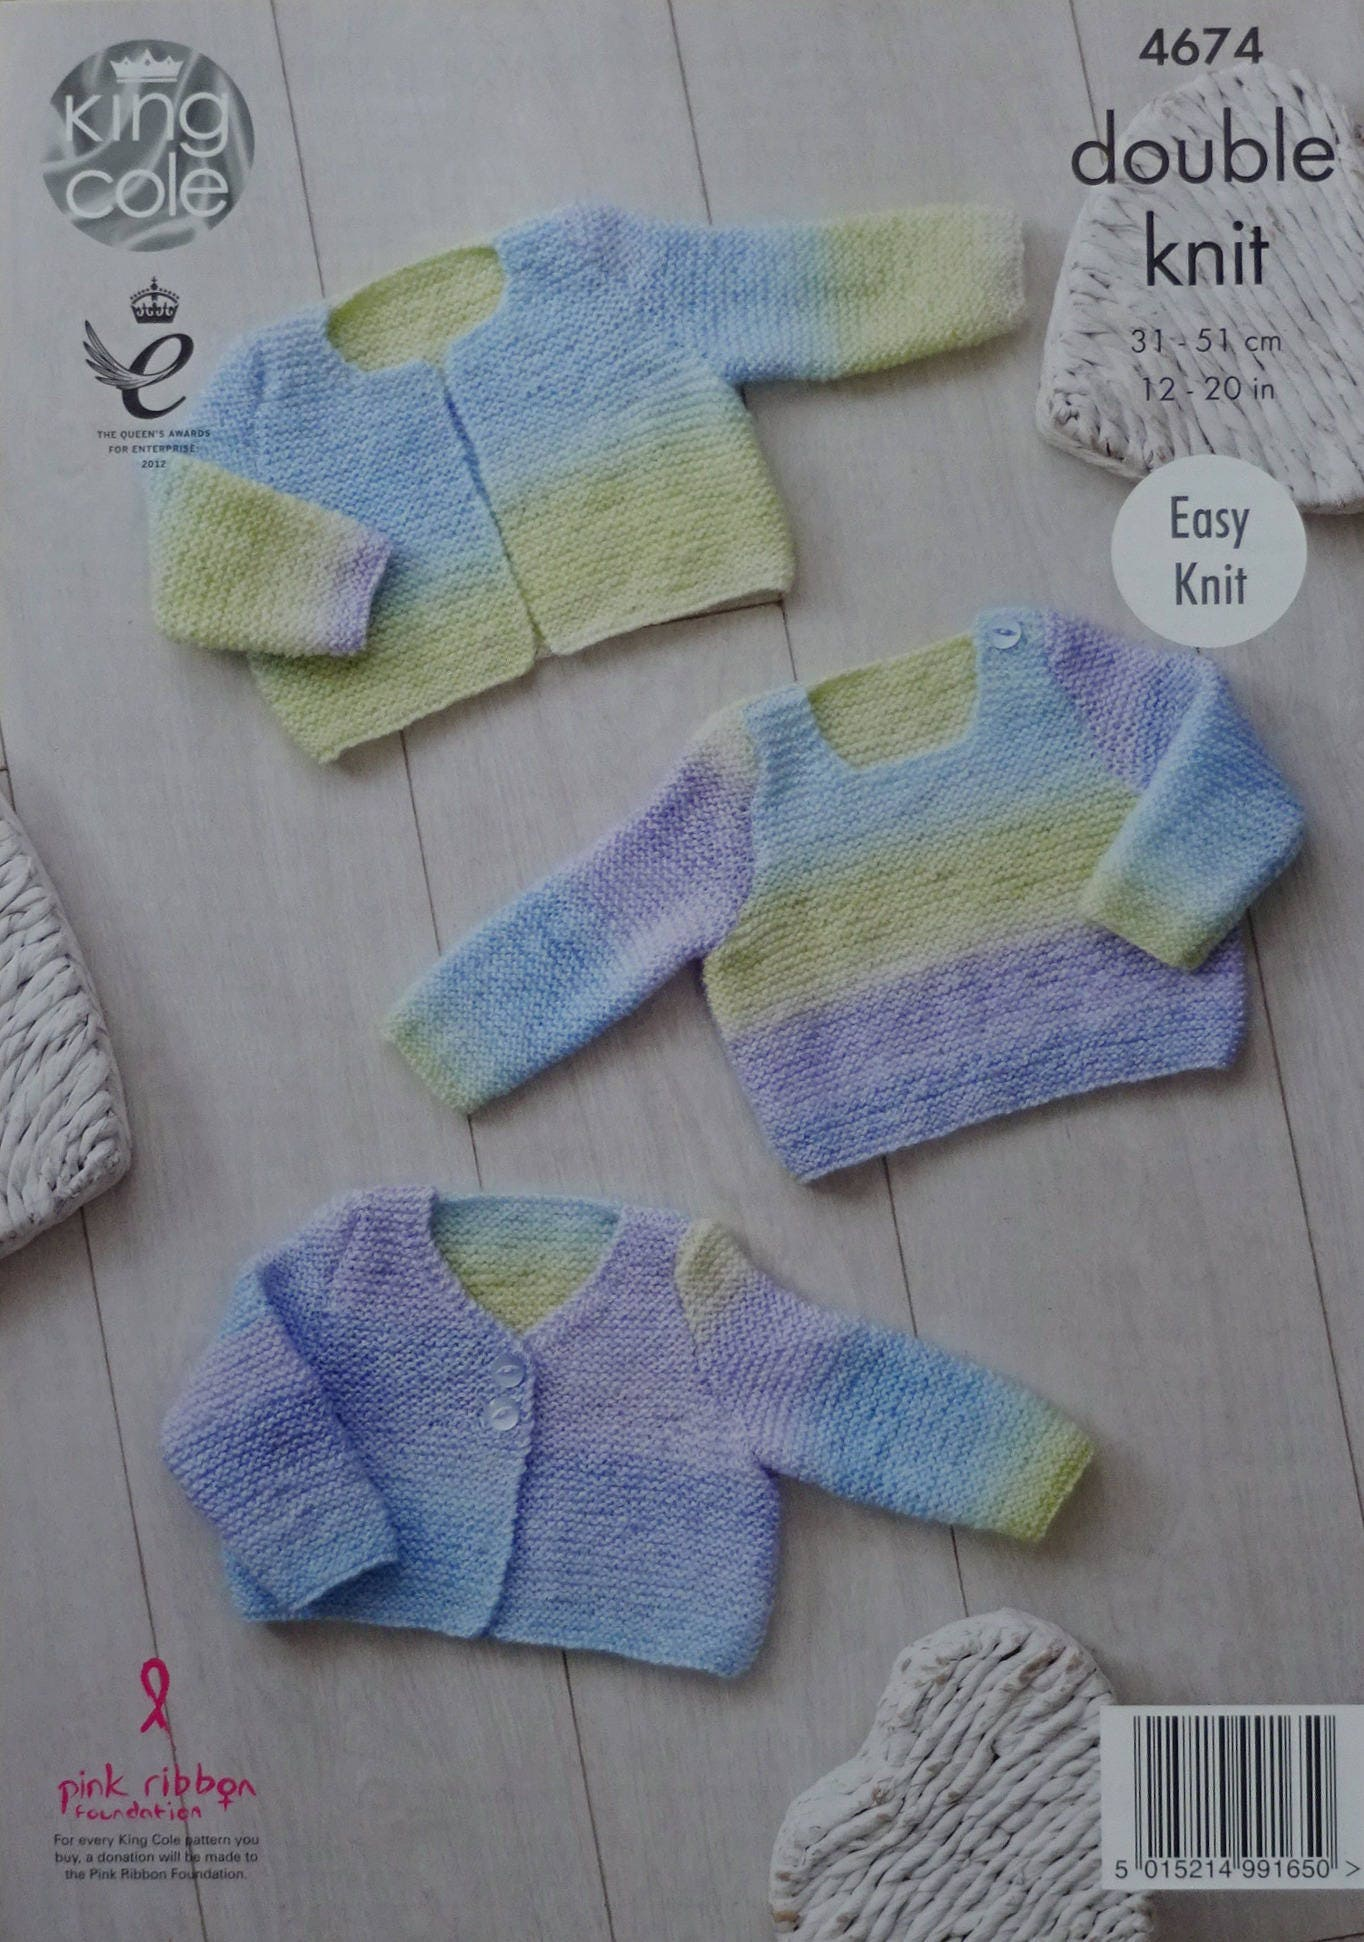 Knitting Patterns Easy Jumpers : Baby Knitting Pattern K4674 Babys Very Easy Knit Jumper & Cardigans ...